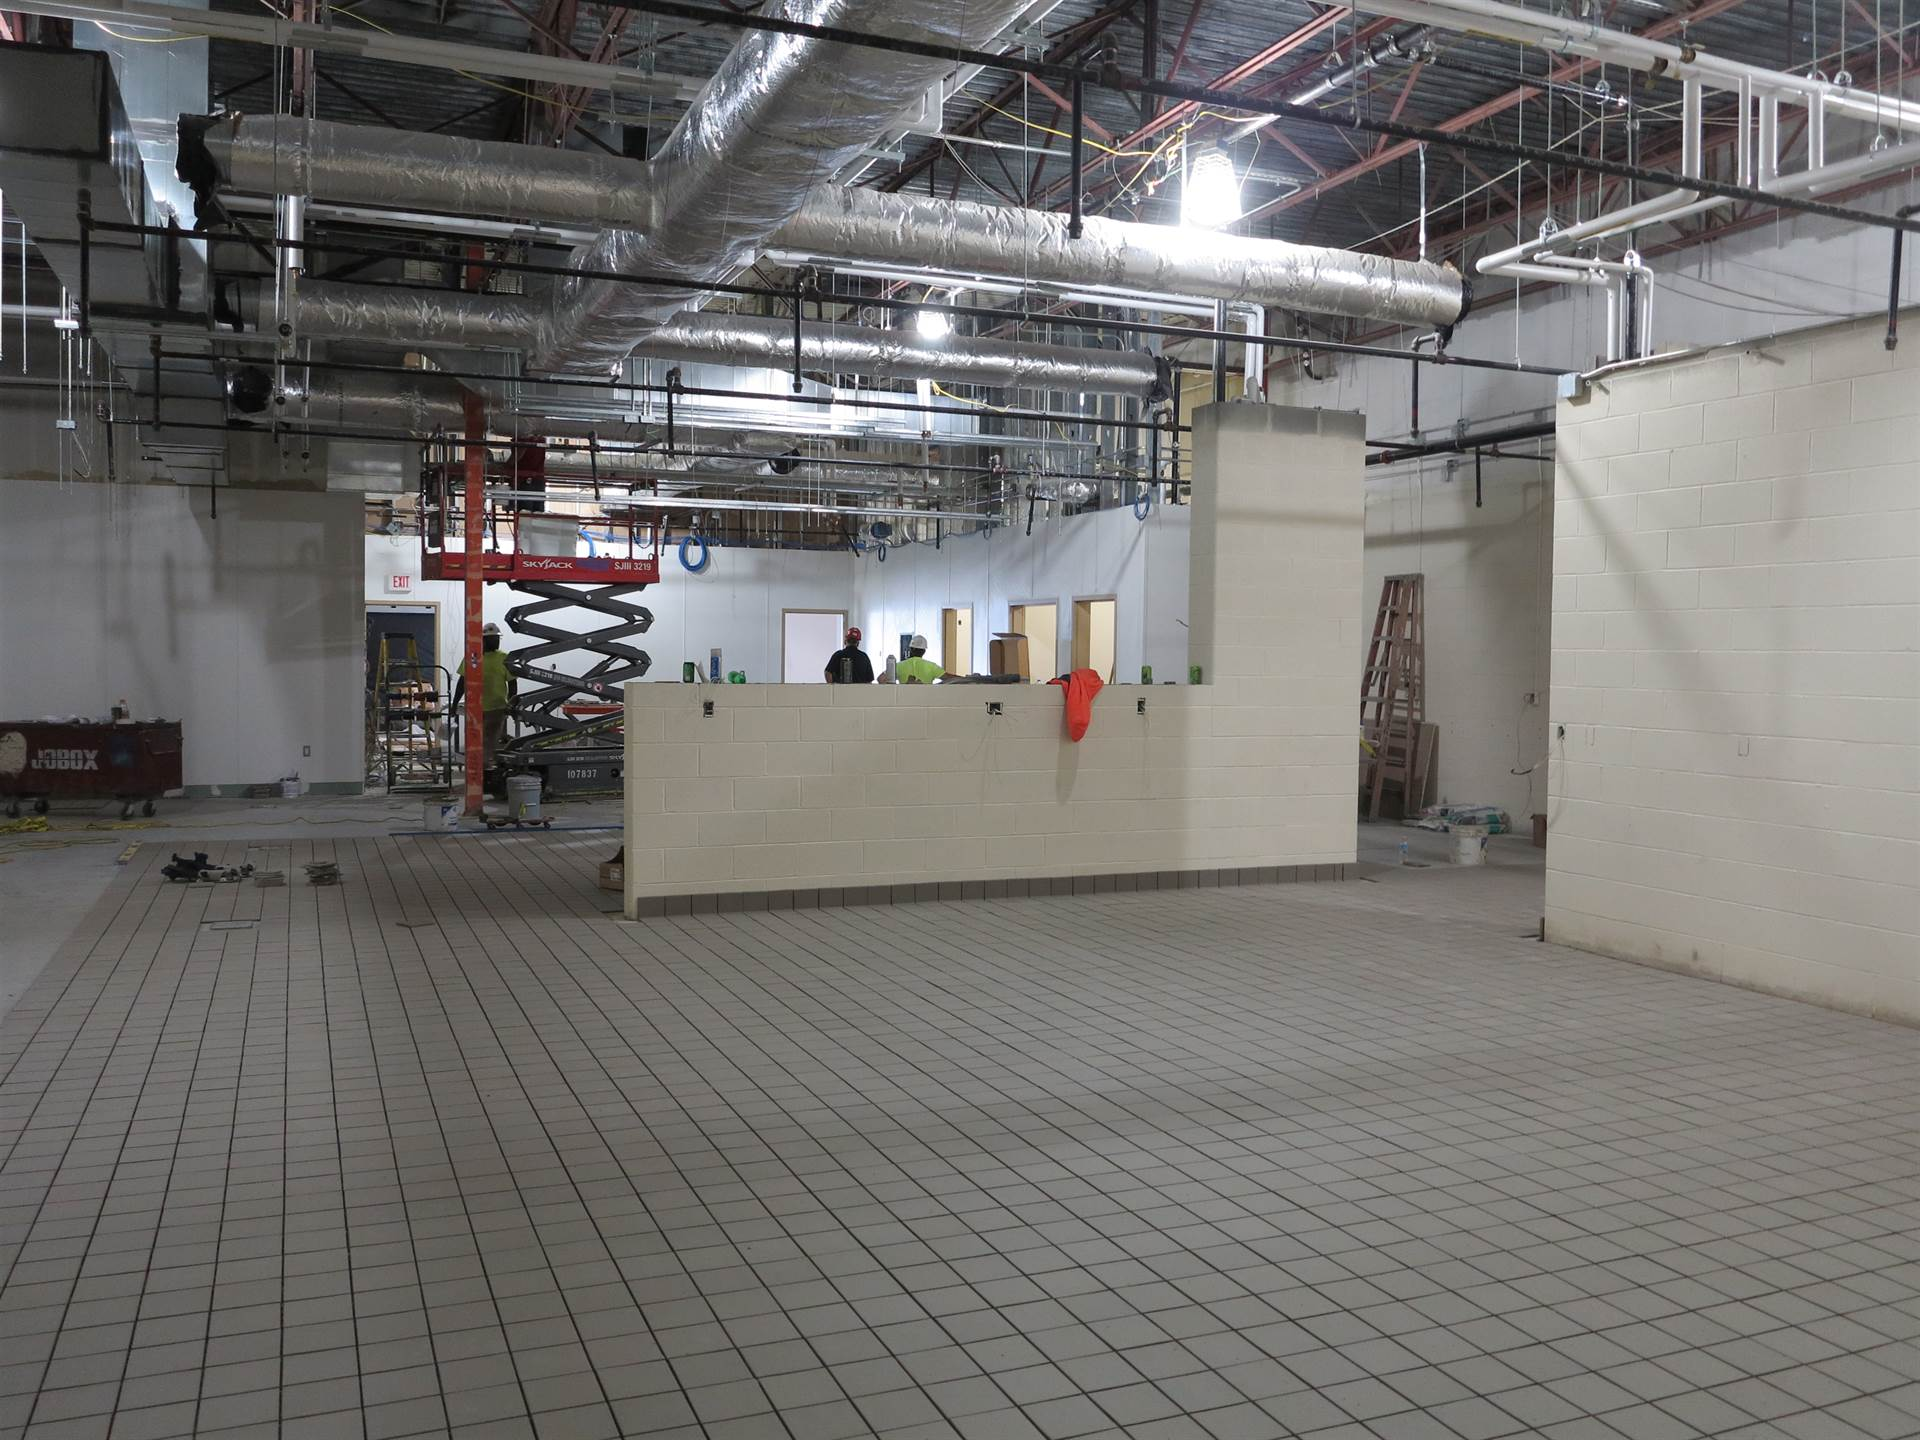 Culinary lab construction